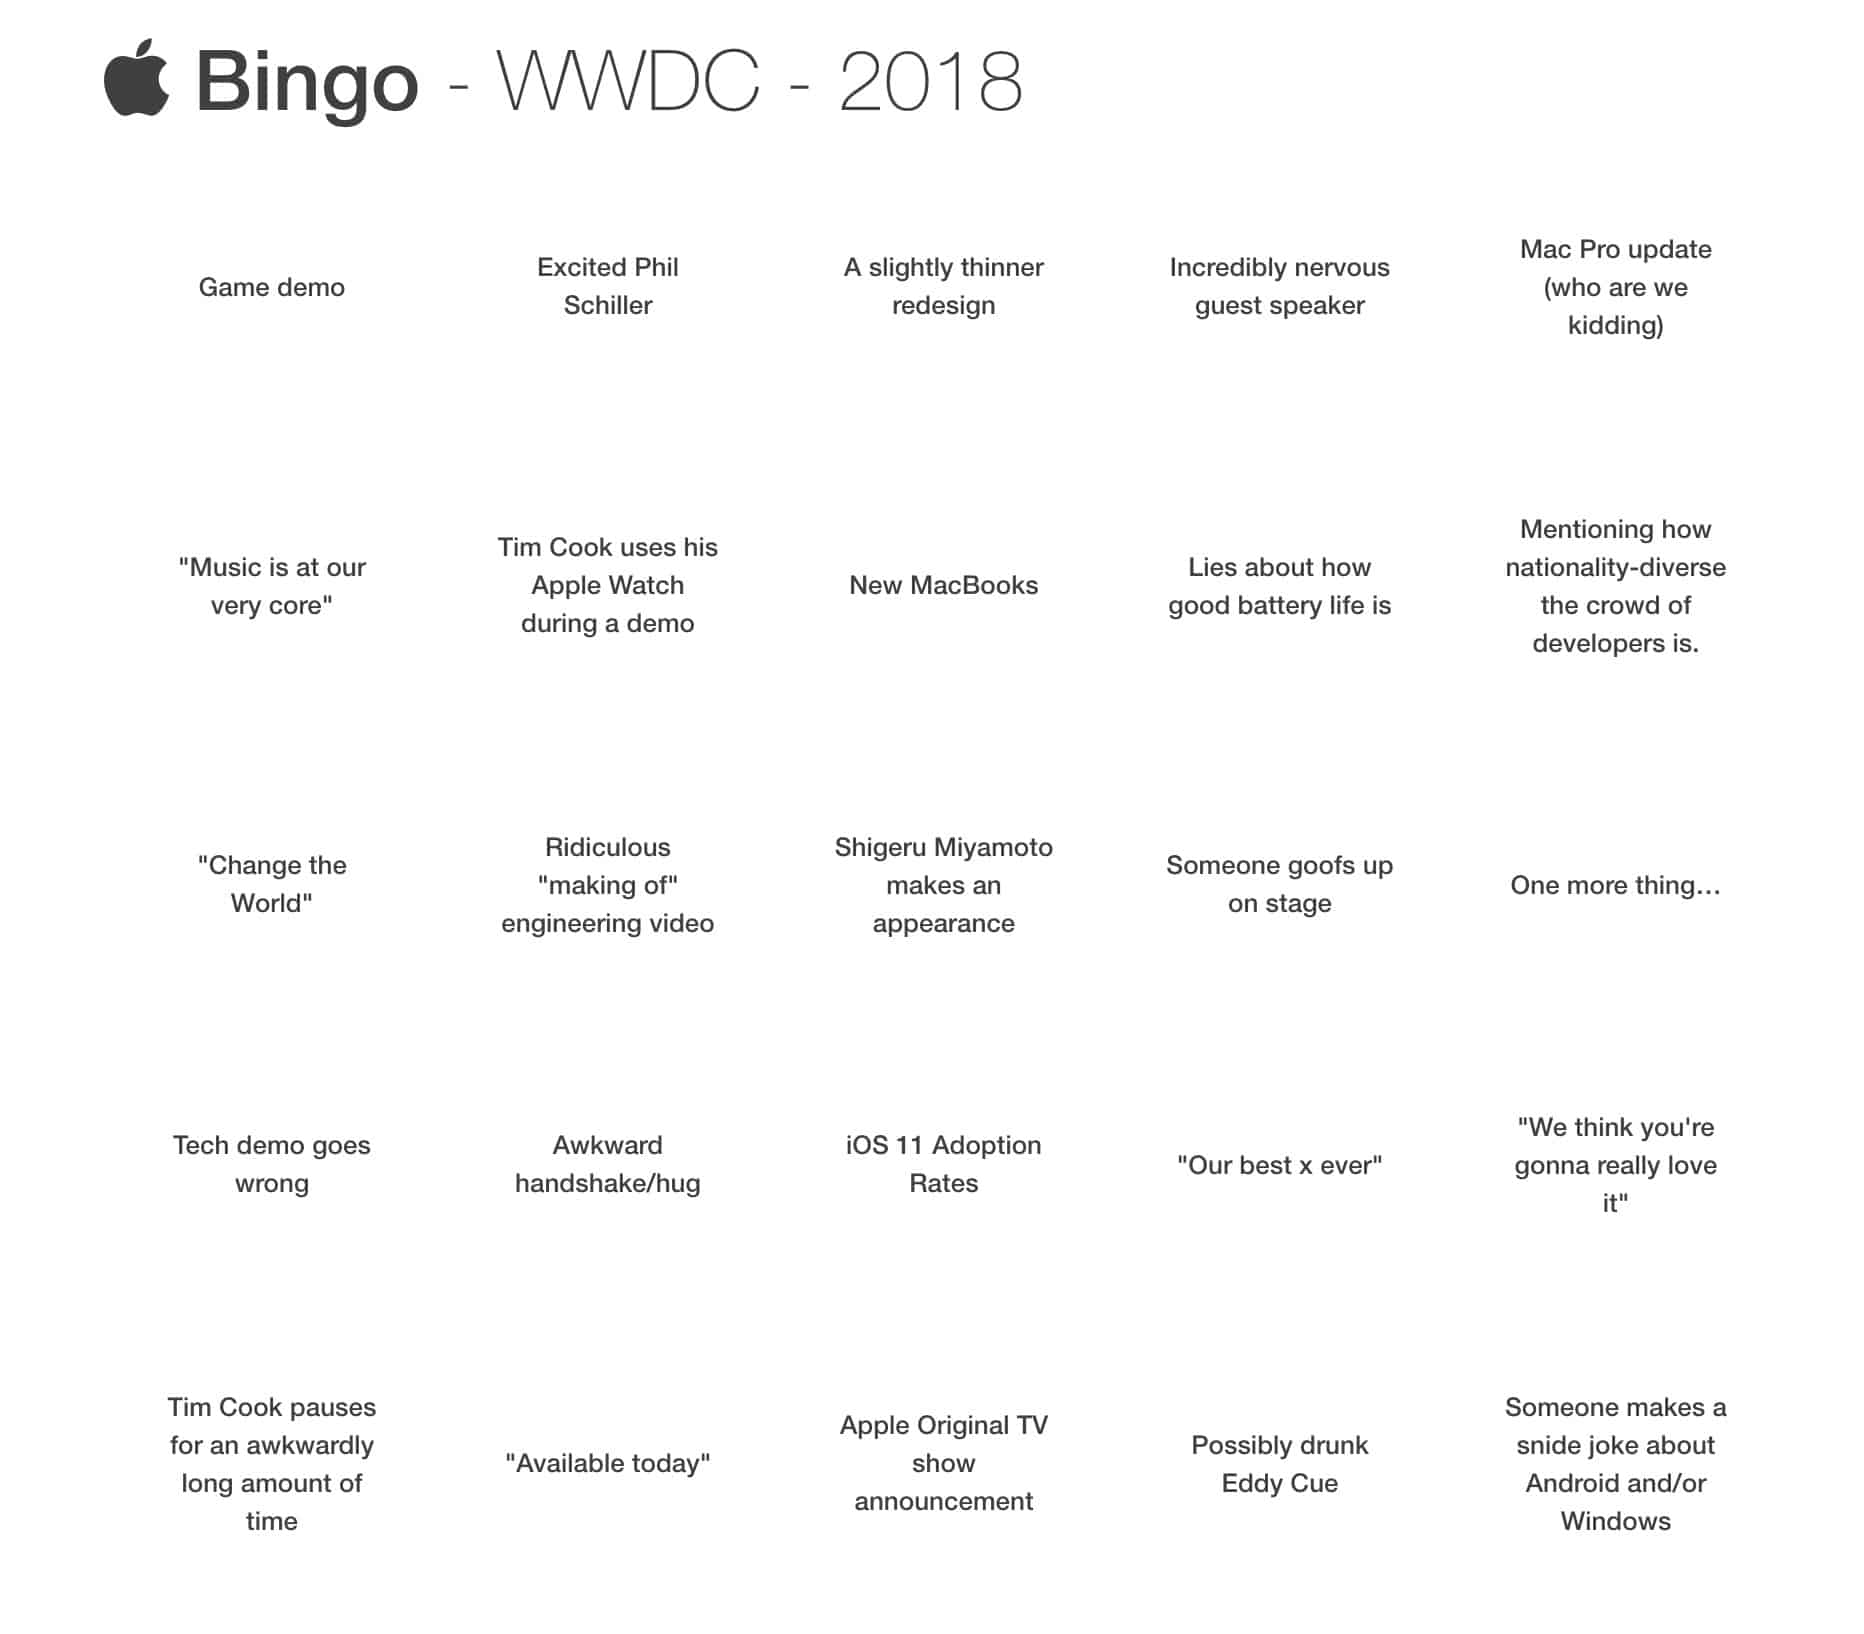 How to watch WWDC 2018: Apple keynote livestream